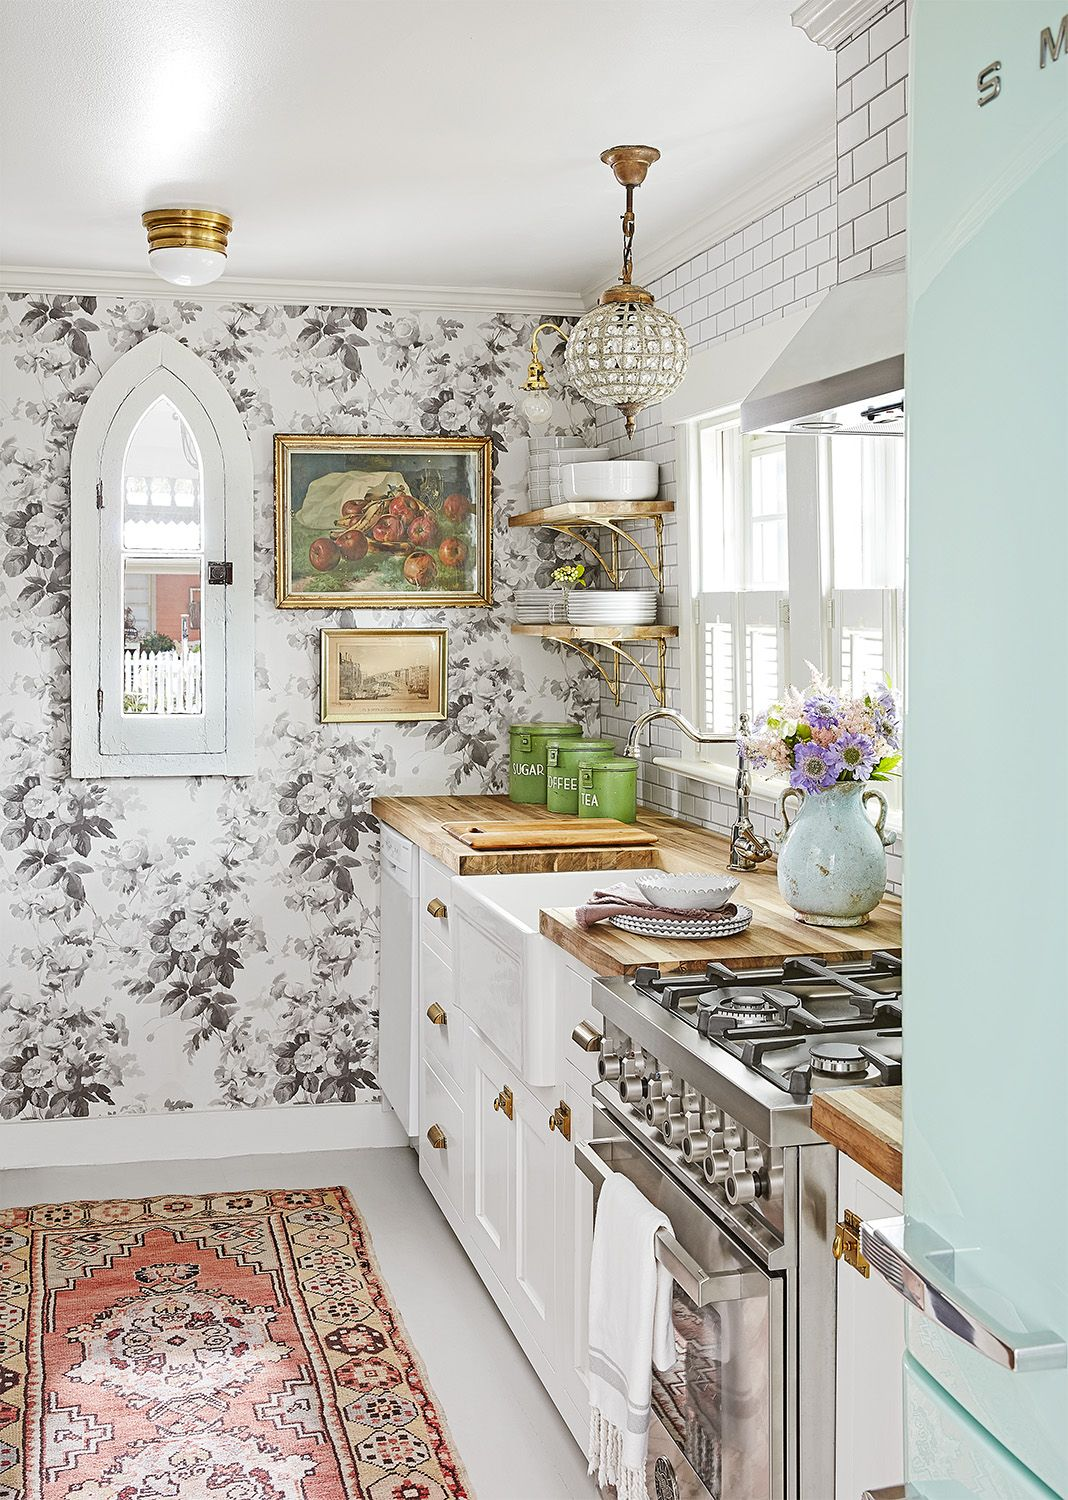 60 Best Kitchen Ideas - Decor and Decorating Ideas for ... on Kitchen Decoration Ideas  id=88618